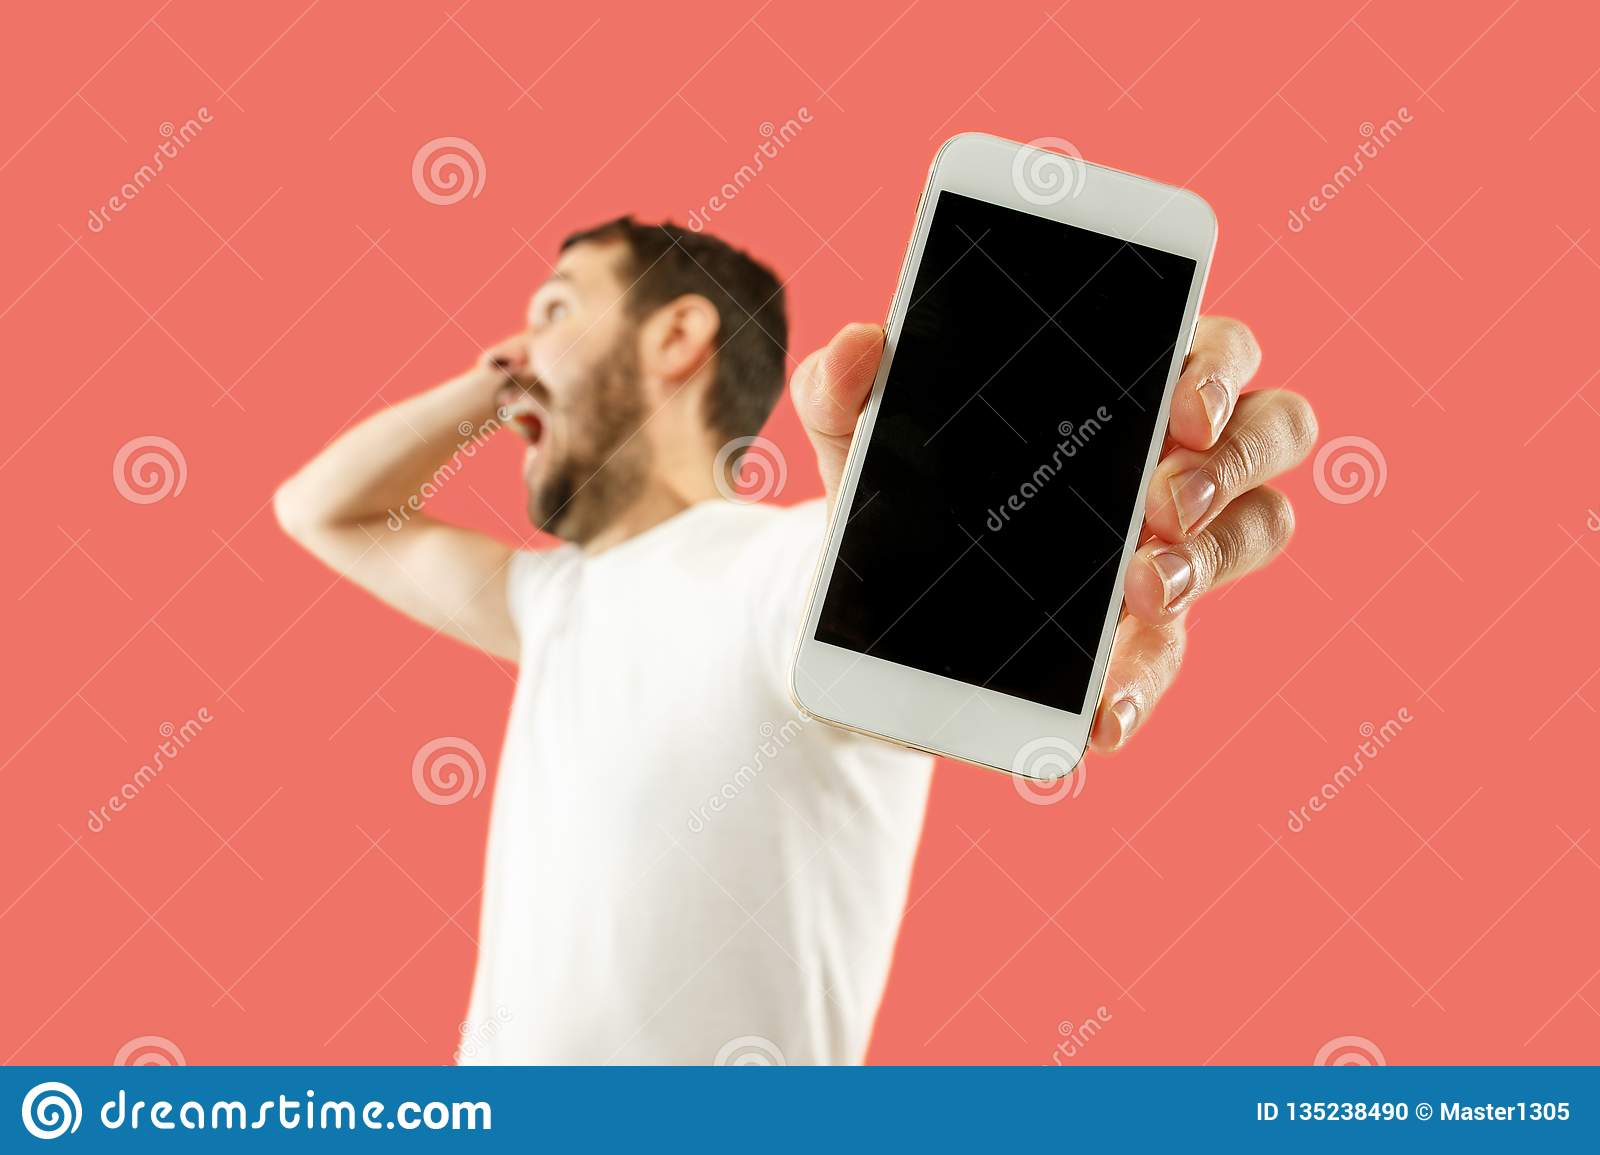 Young handsome man showing smartphone screen isolated on coral background in shock with a surprise face